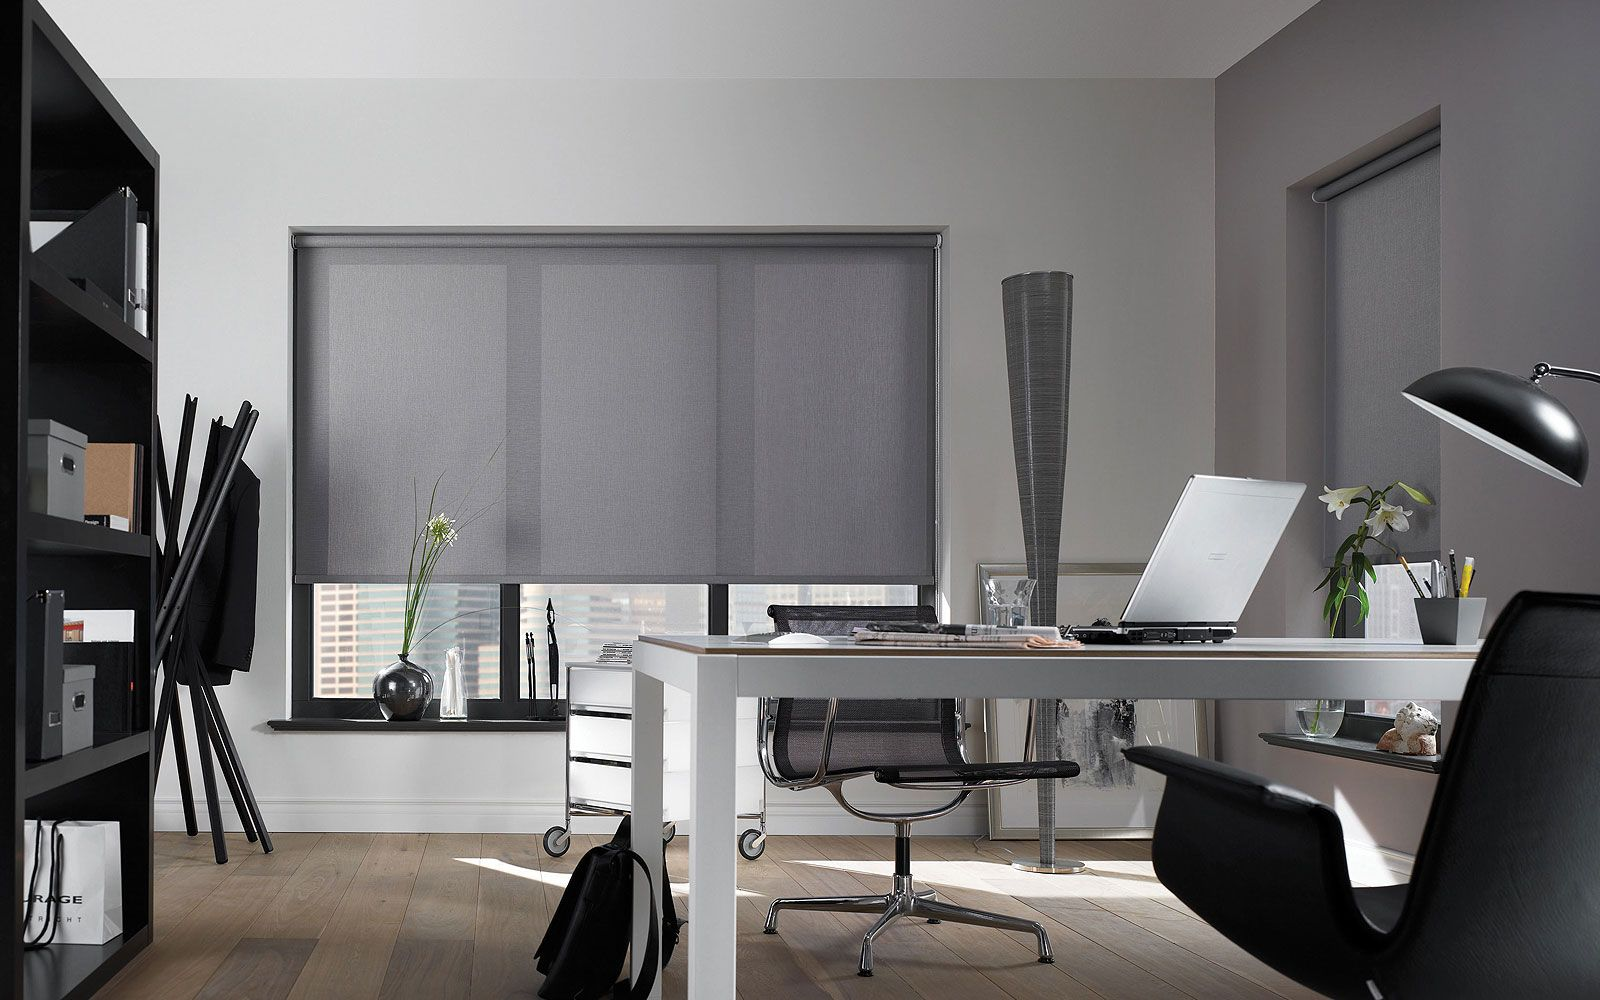 design pinterest office contractor grey interior pin blinds roller